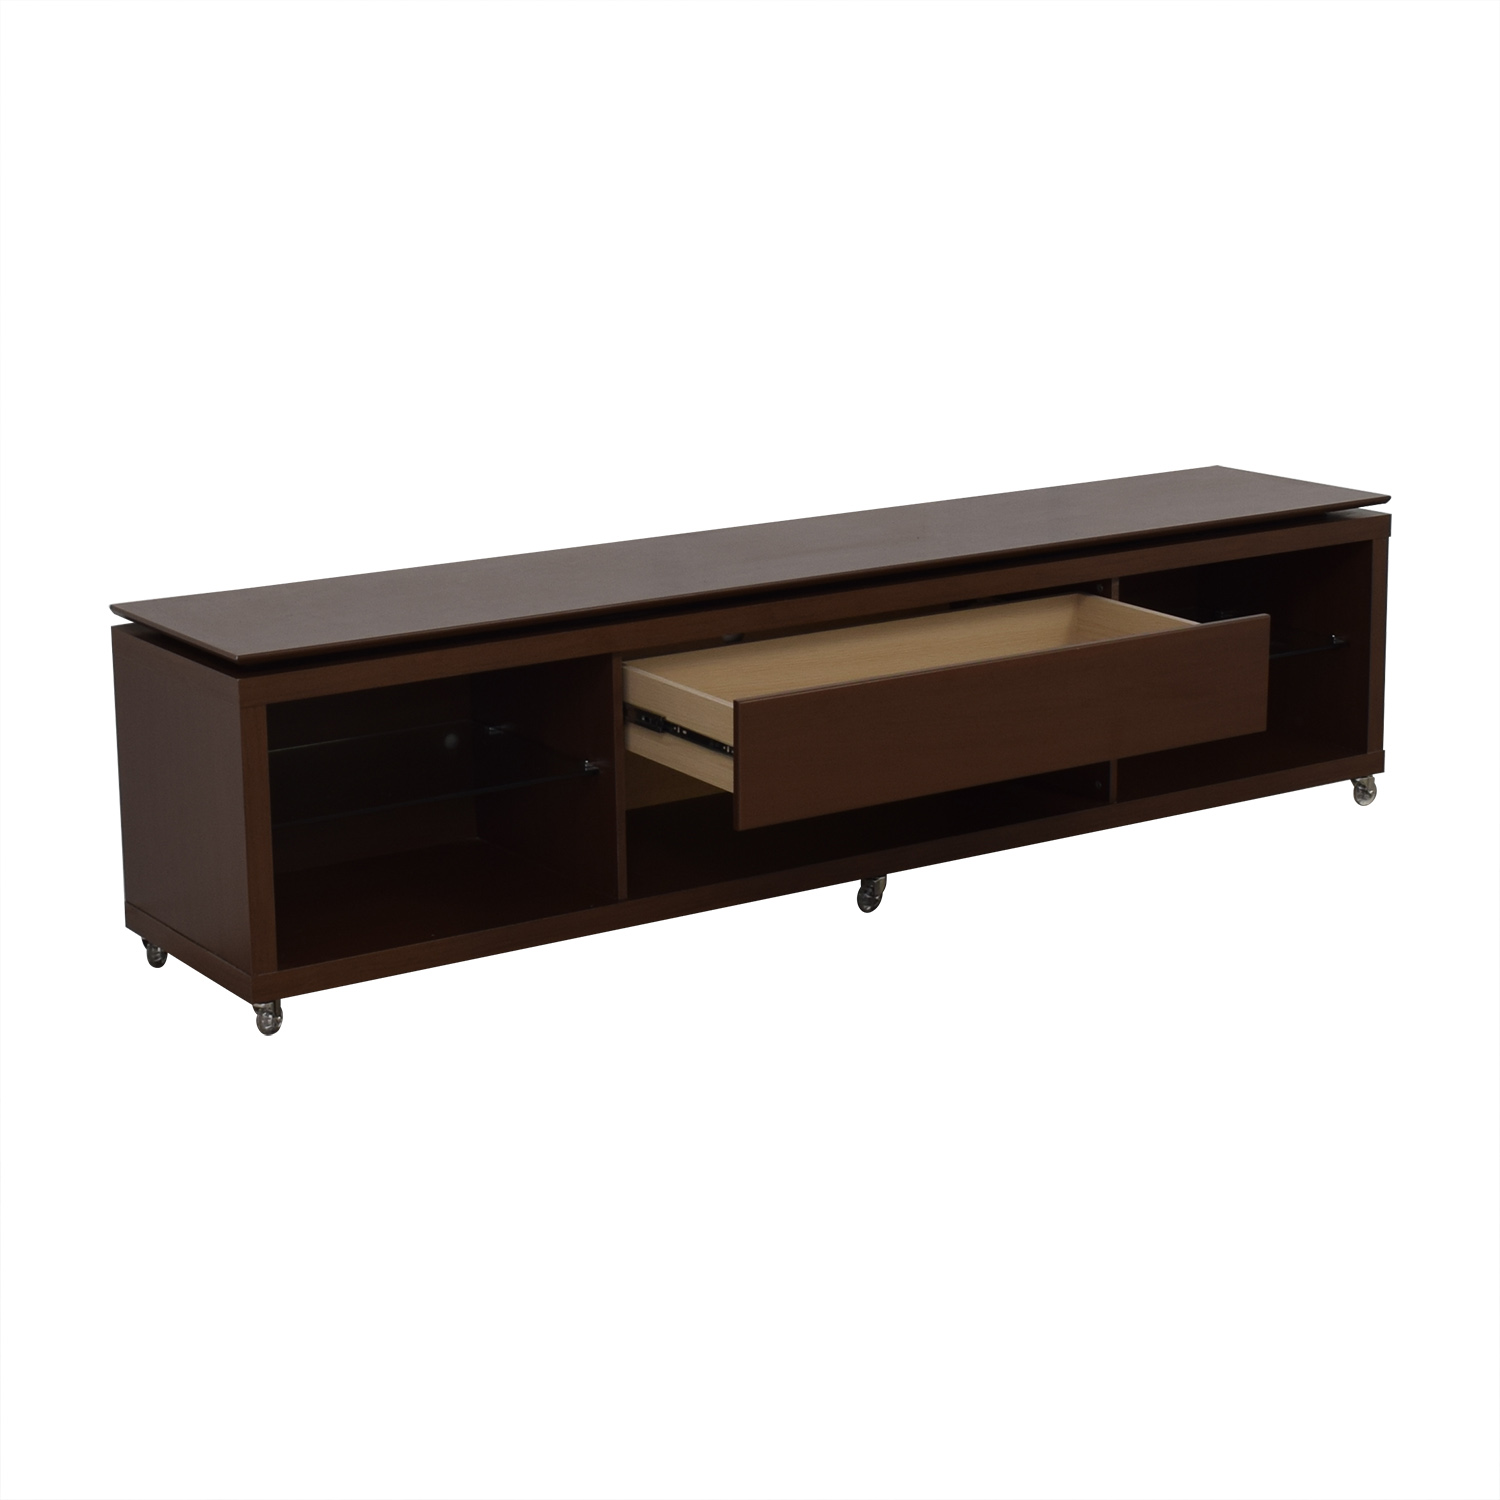 buy Bed Bath & Beyond Manhattan Comfort Lincoln Media Stand Bed Bath & Beyond Storage